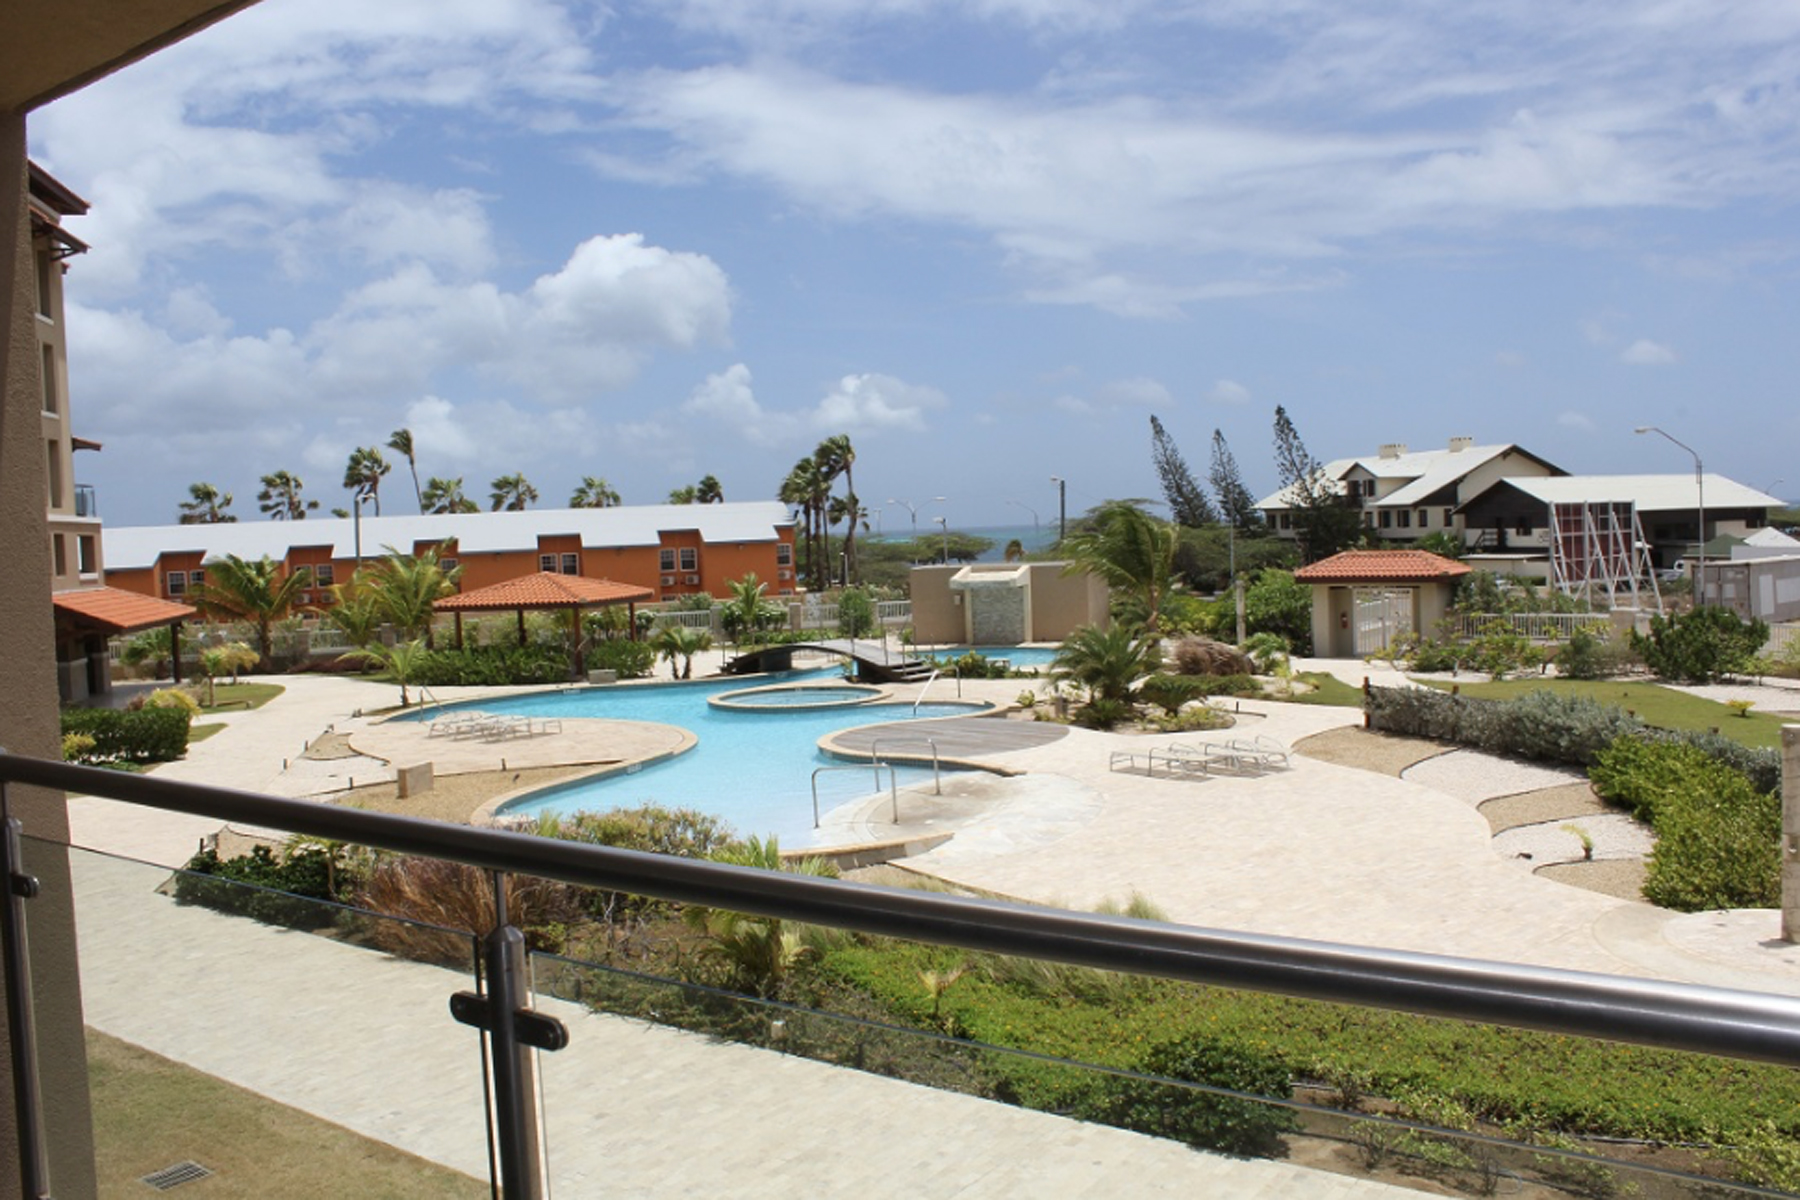 Condominium for Sale at Oasis 5 Eagle Beach, Aruba